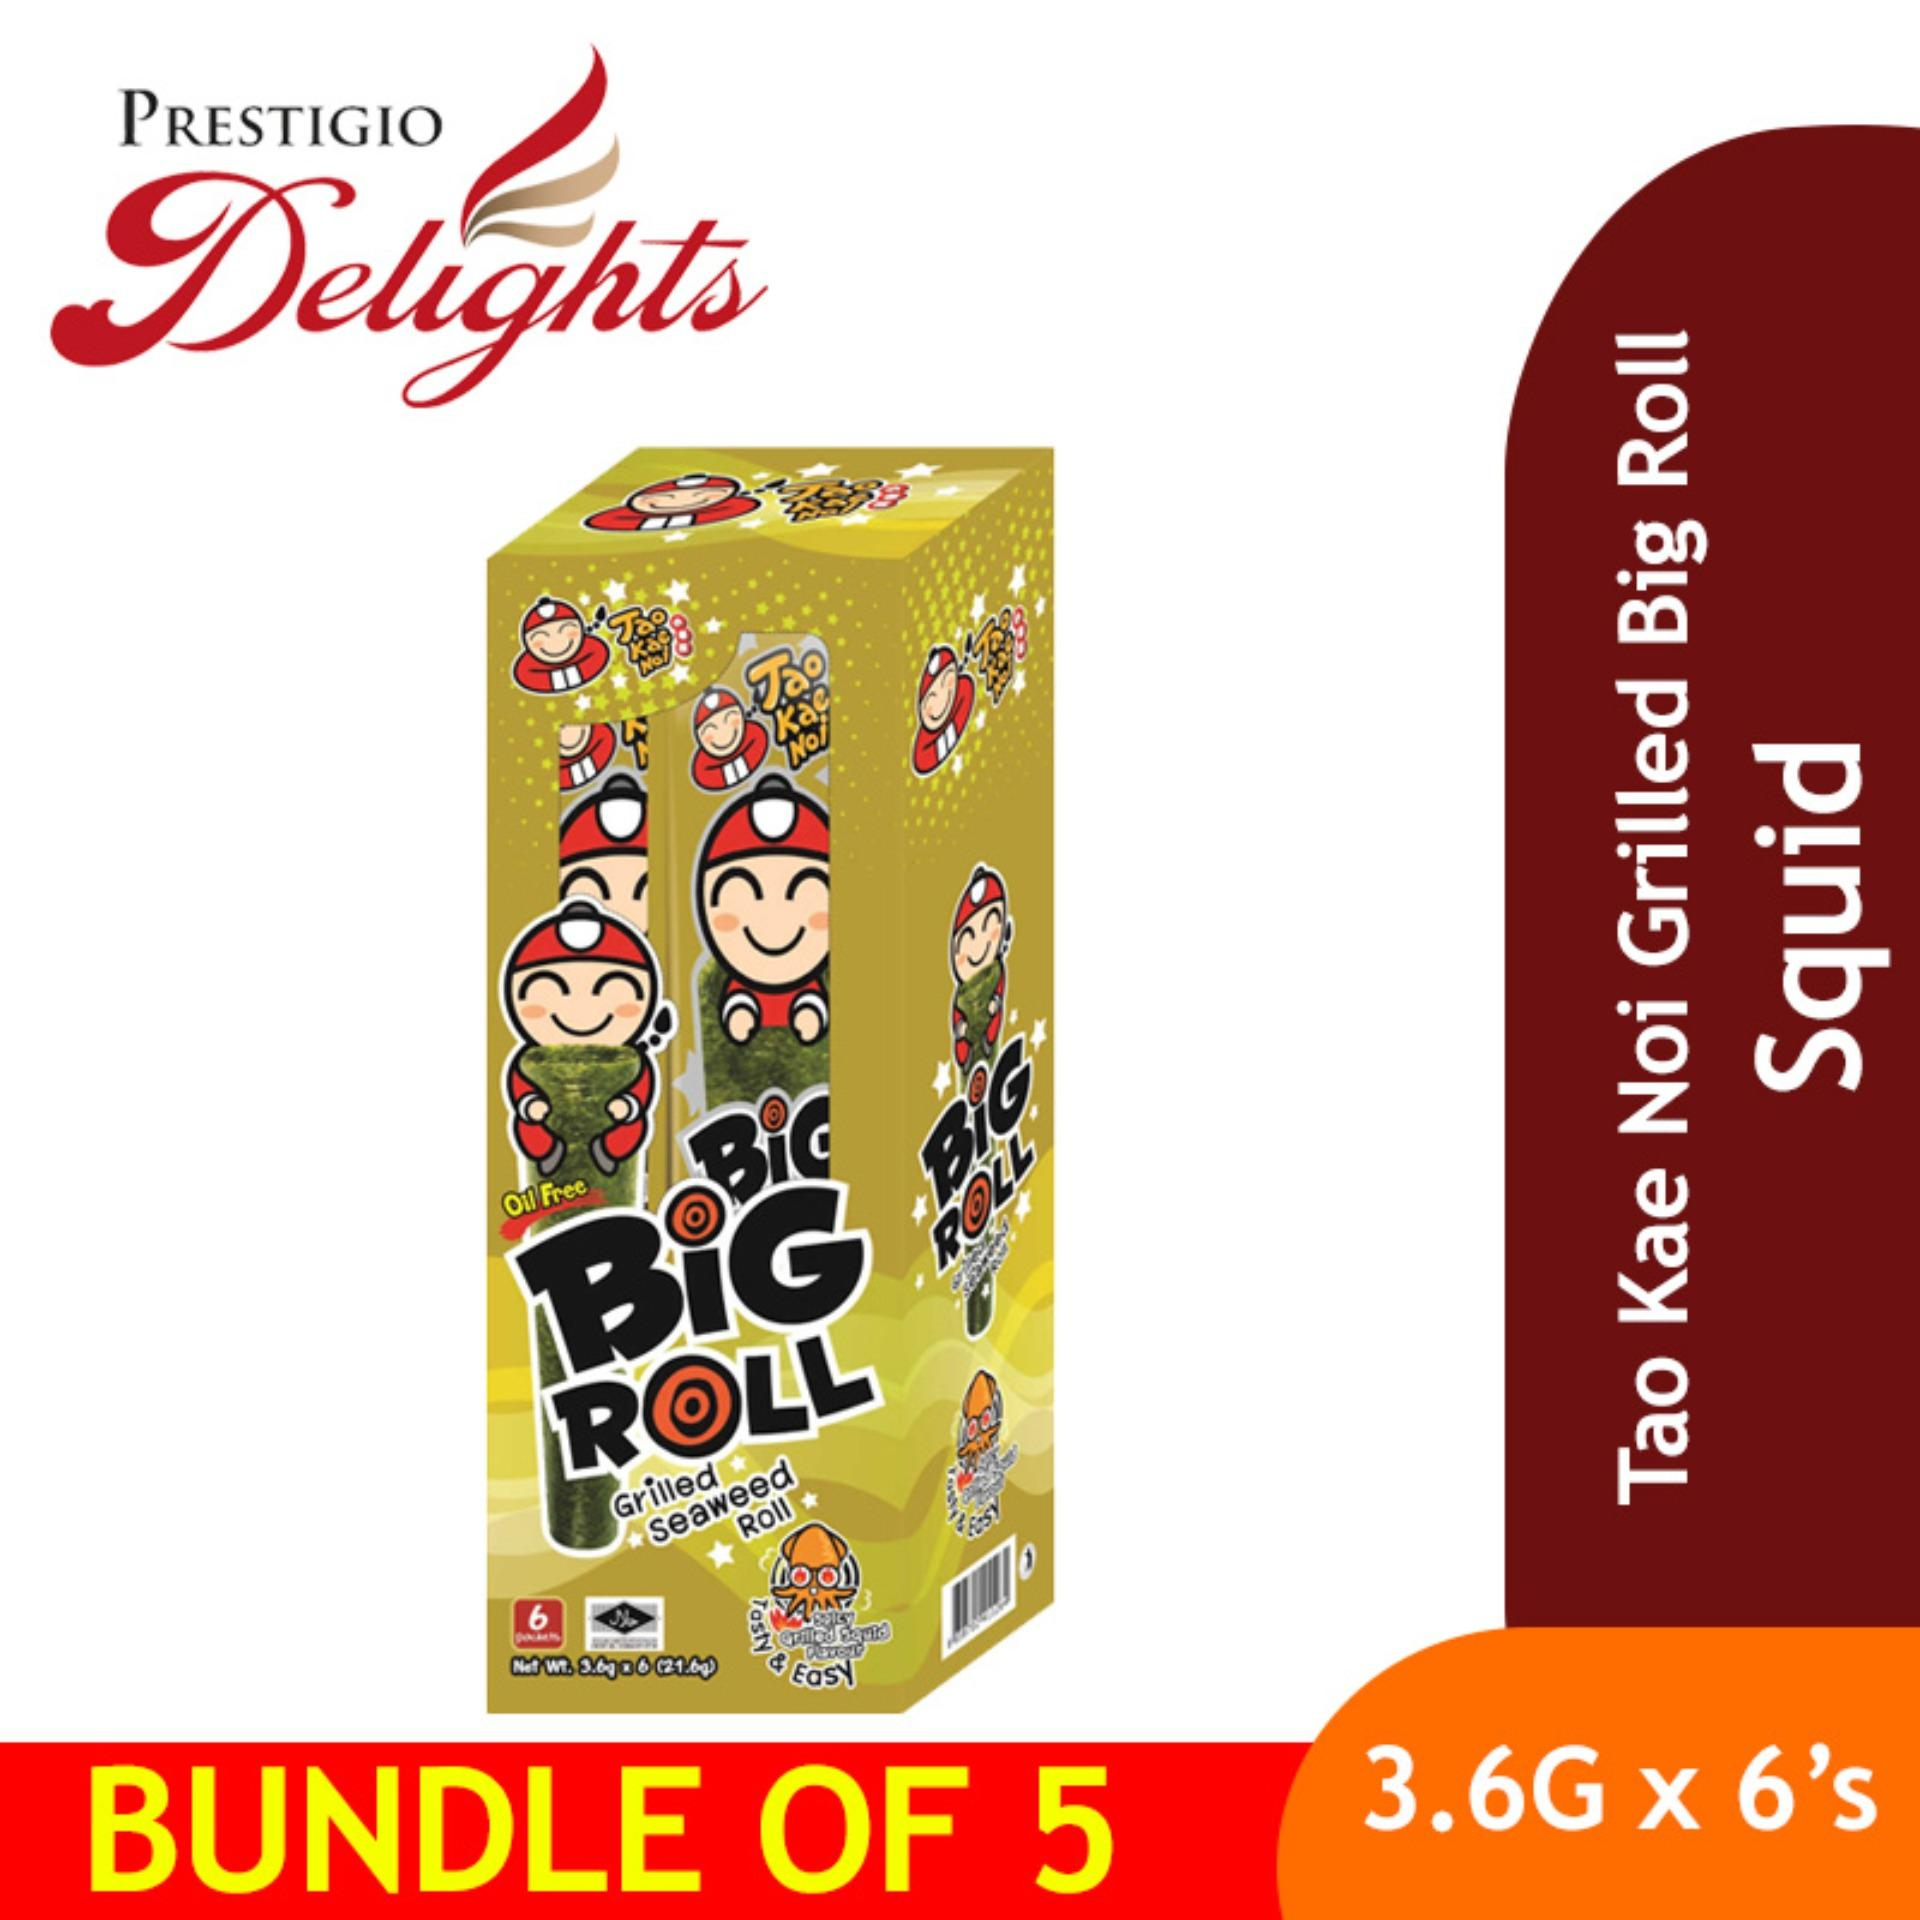 Tao Kae Noi Grilled Big Roll Squid 3.6g Bundle Of 5 By Prestigio Delights.